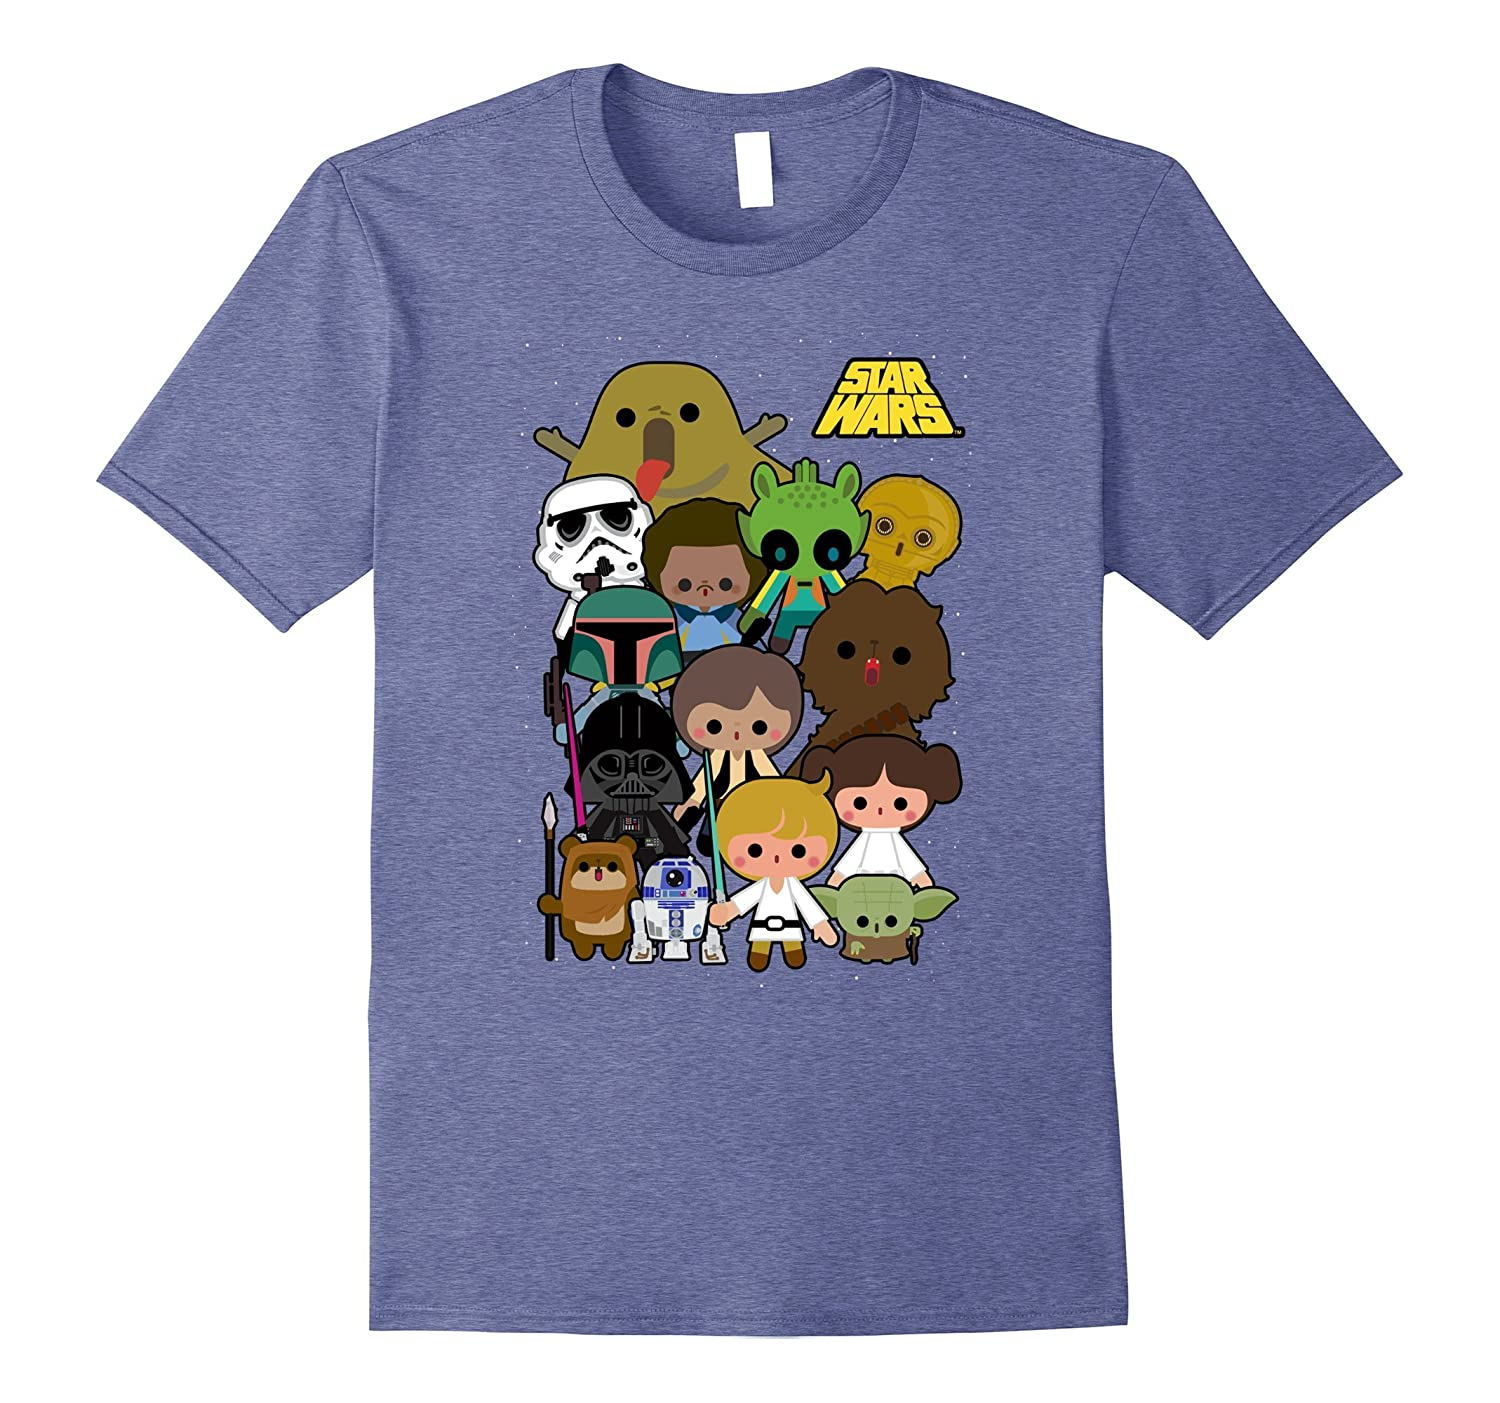 1709b69b7de Star Wars Cute Cartoon Character Group Kawaii T-Shirt - mnglogistics.nl